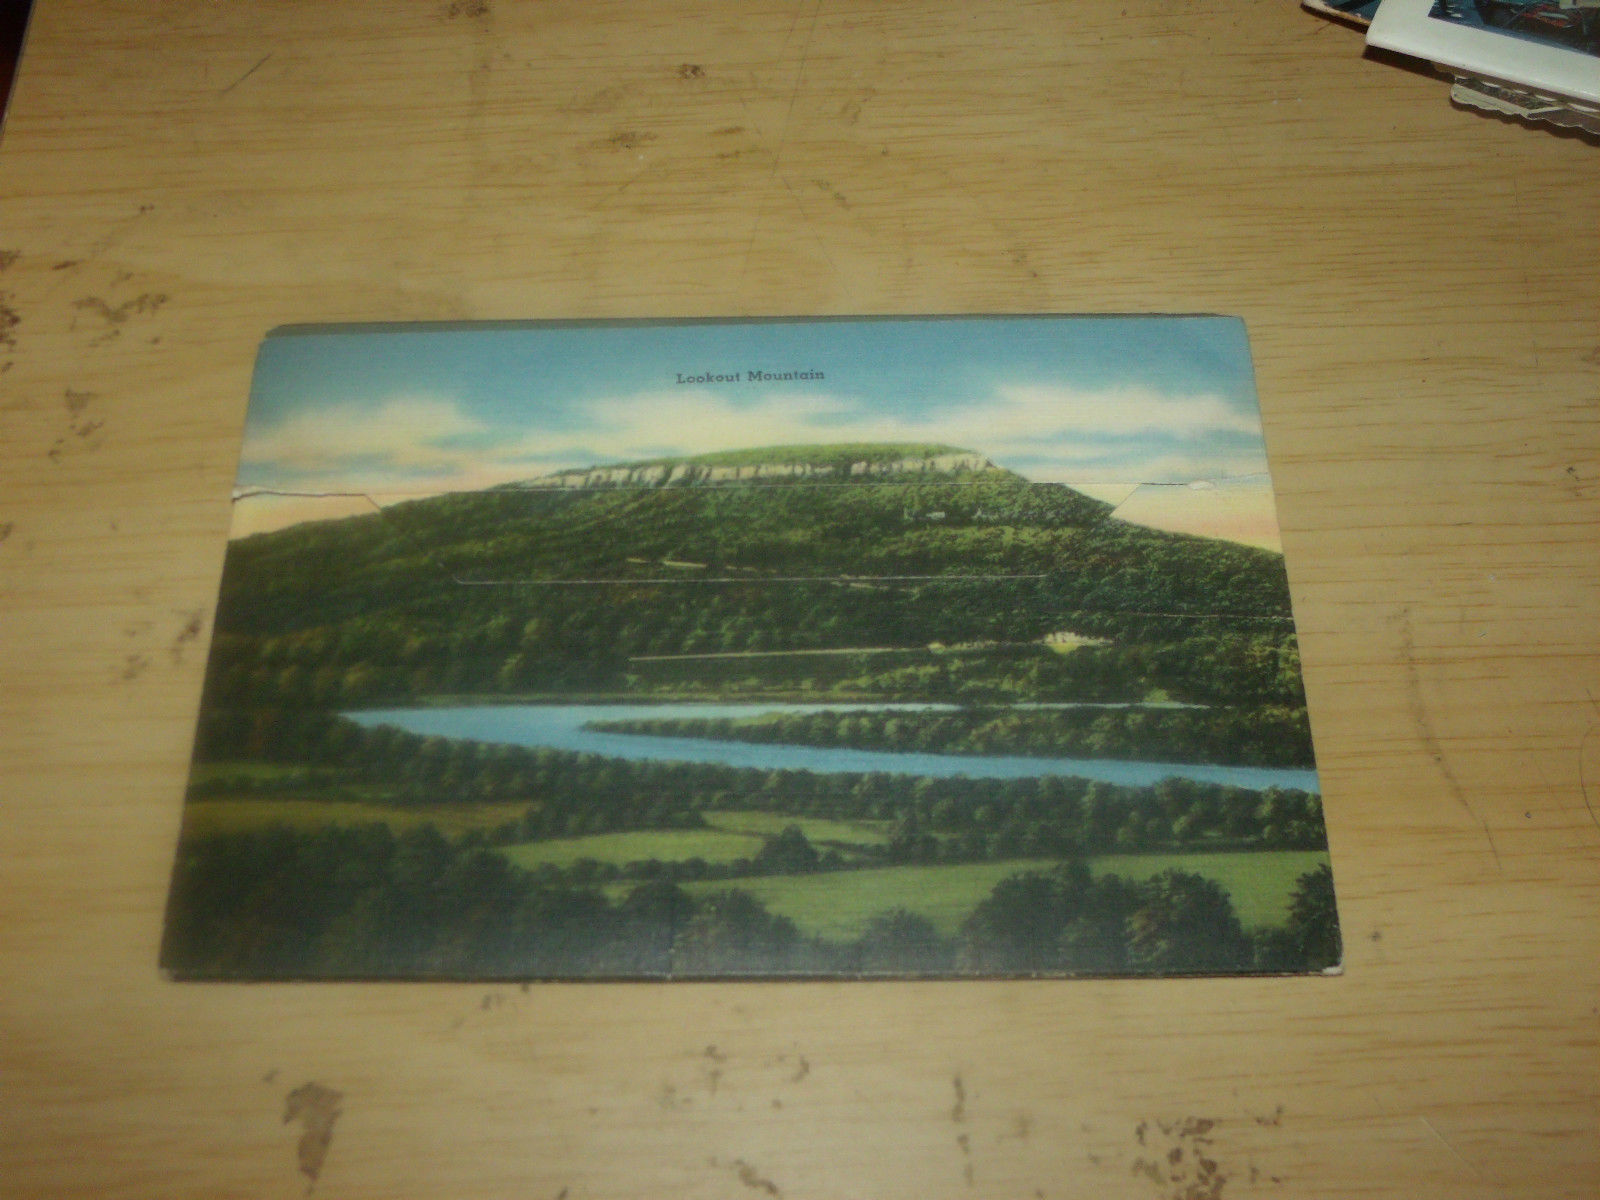 VIEWS OF POINT LOOKOUT MOUNTAIN  CHATTANOOGA VINTAGE UNUSED FOLDOUT POSTCARD